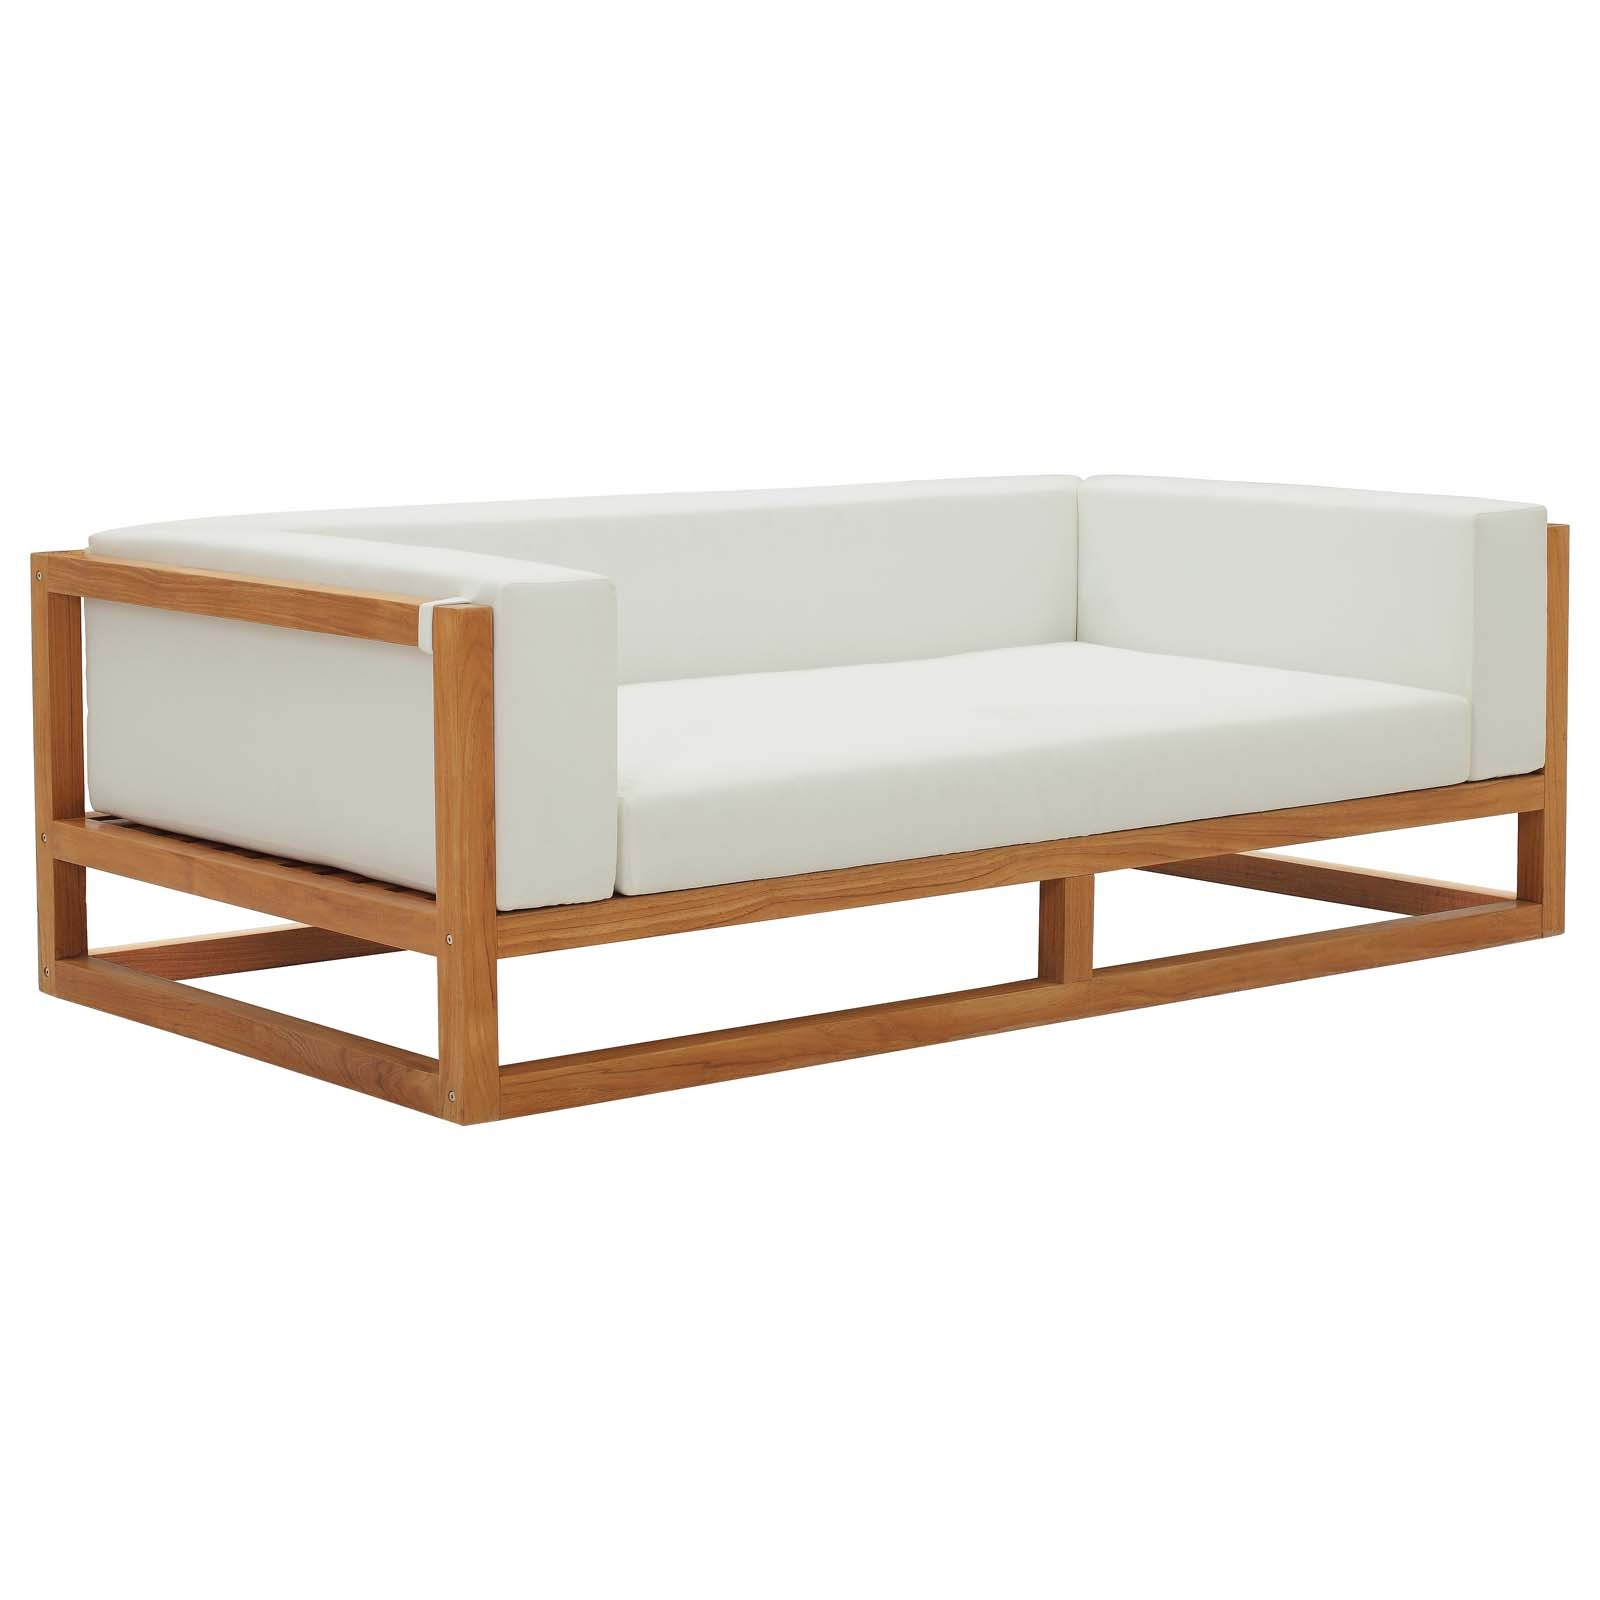 Newbury Accent Lounge Outdoor Patio Premium Grade A Teak Wood Sofa in Natural White